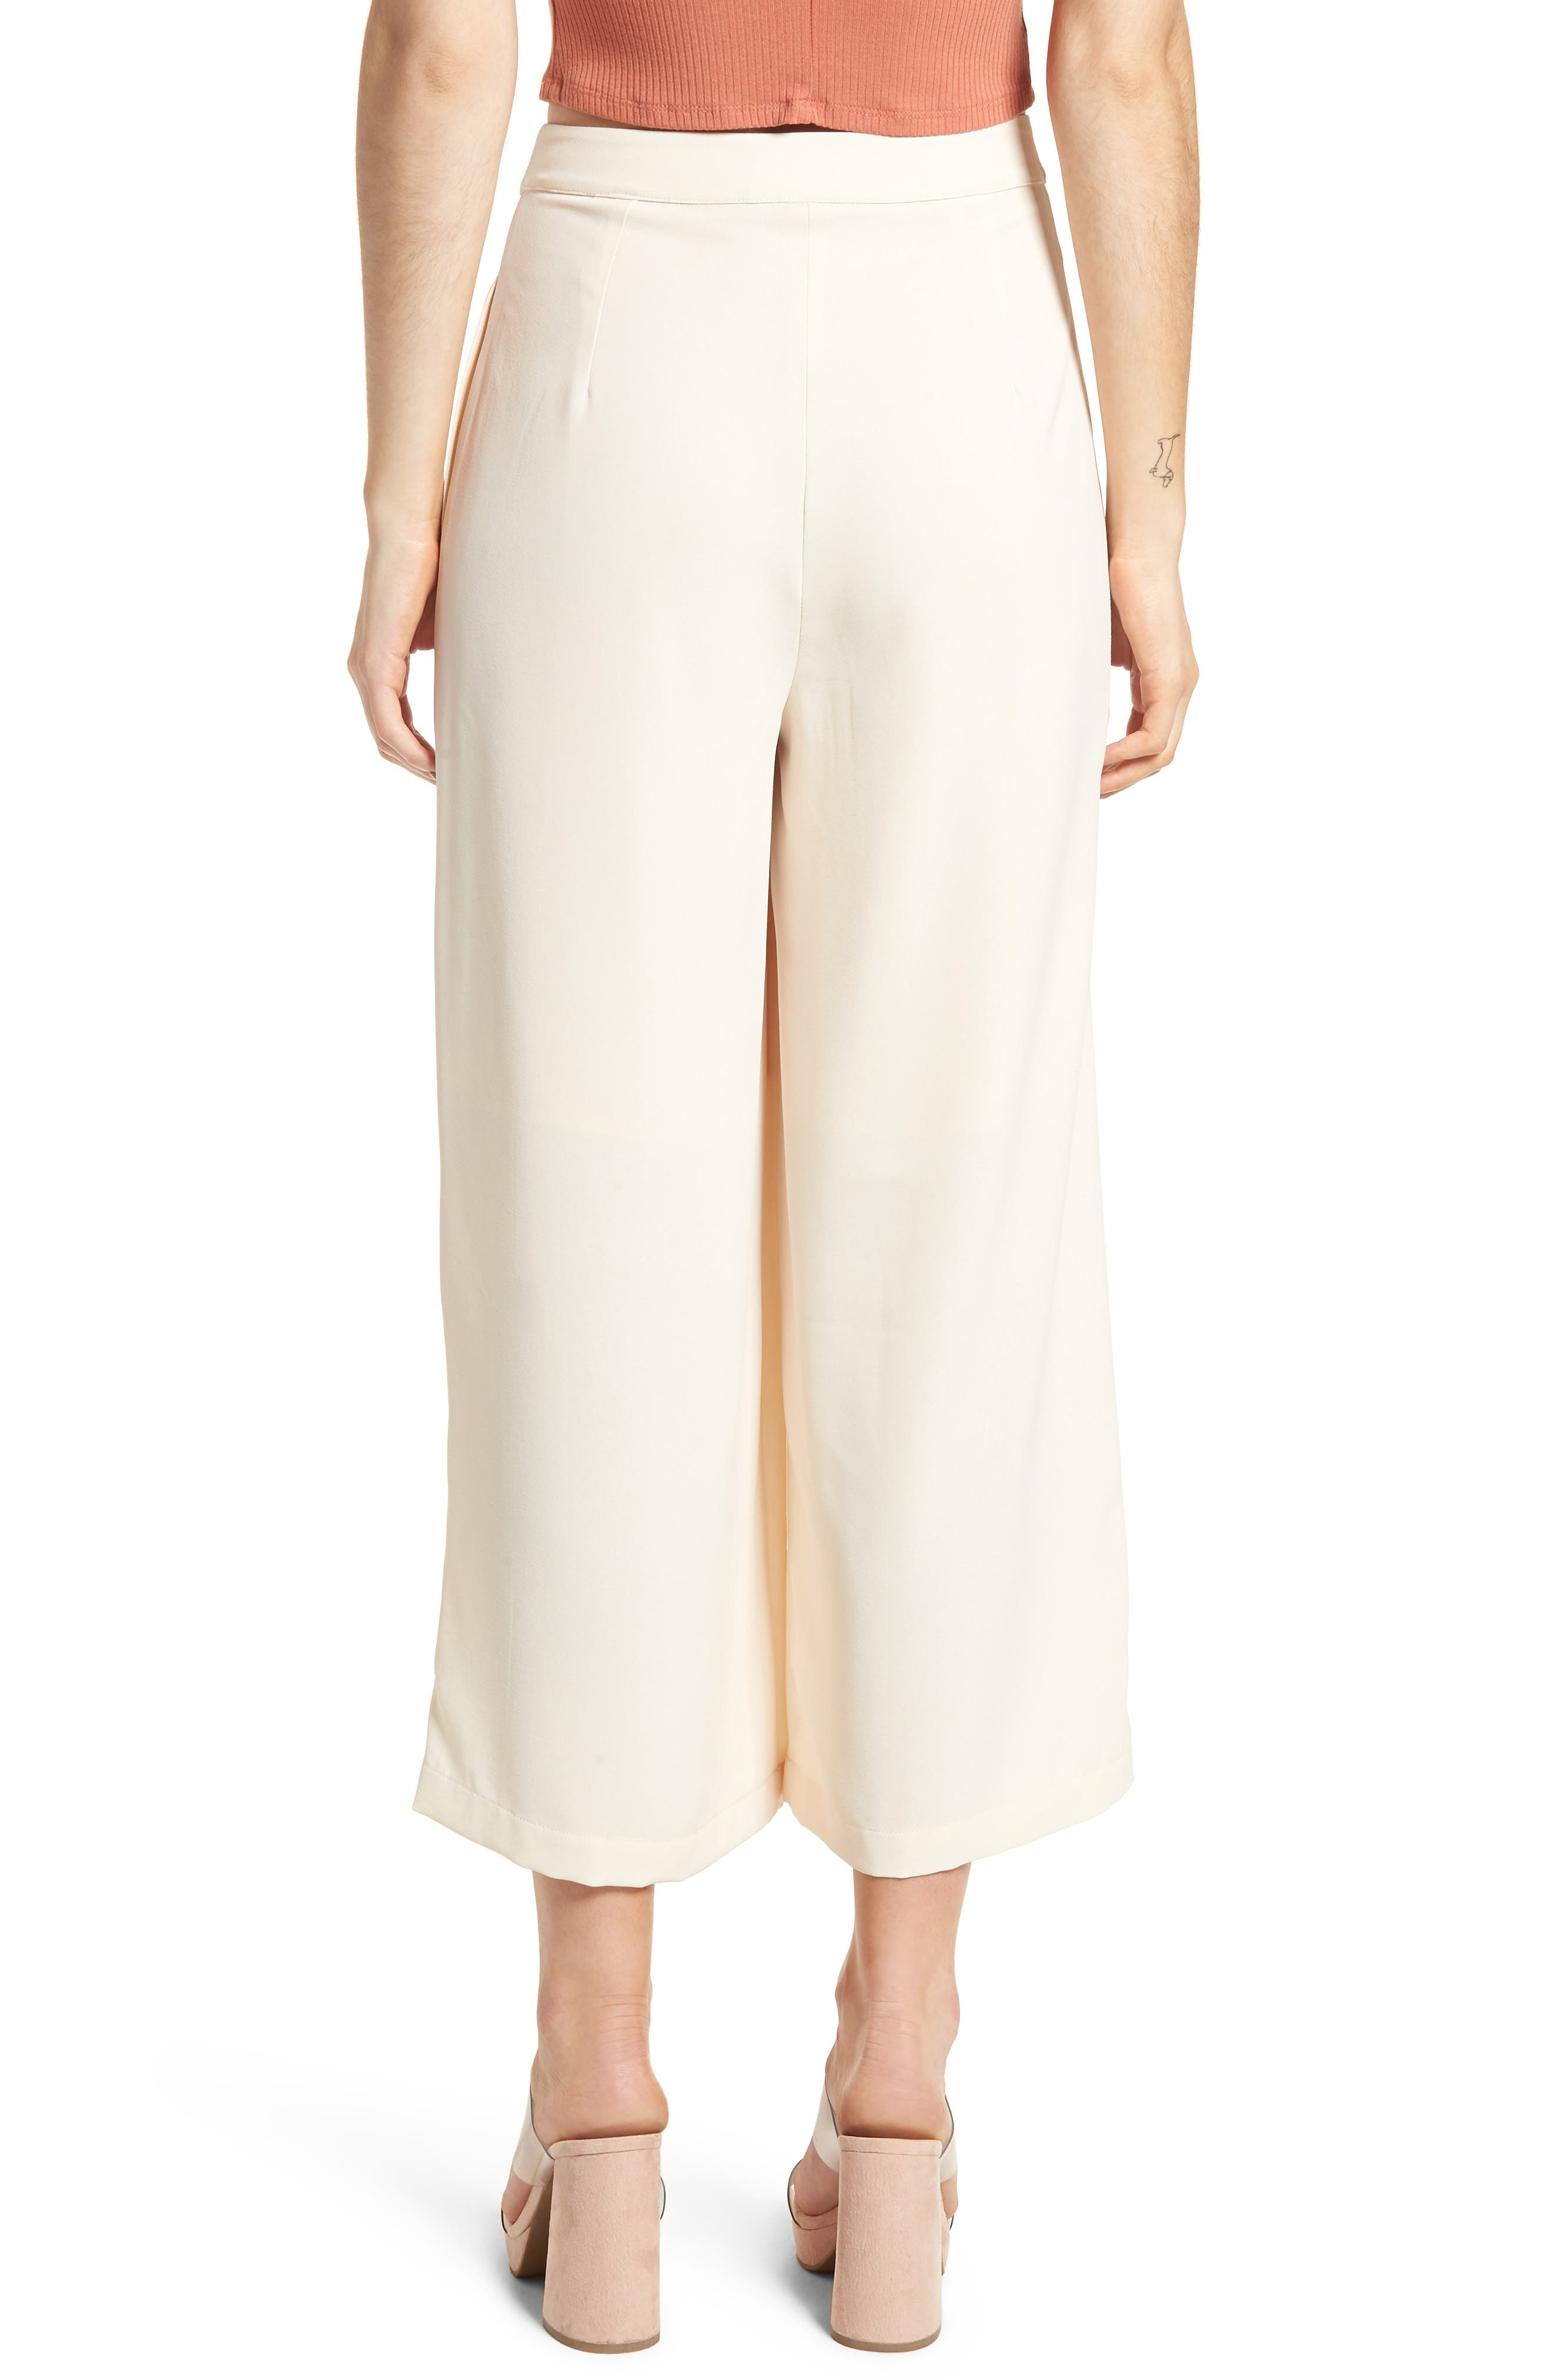 Chriselle x J.O.A. Pleat High Waist Crop Wide Leg Pants,                             Alternate thumbnail 2, color,                             650